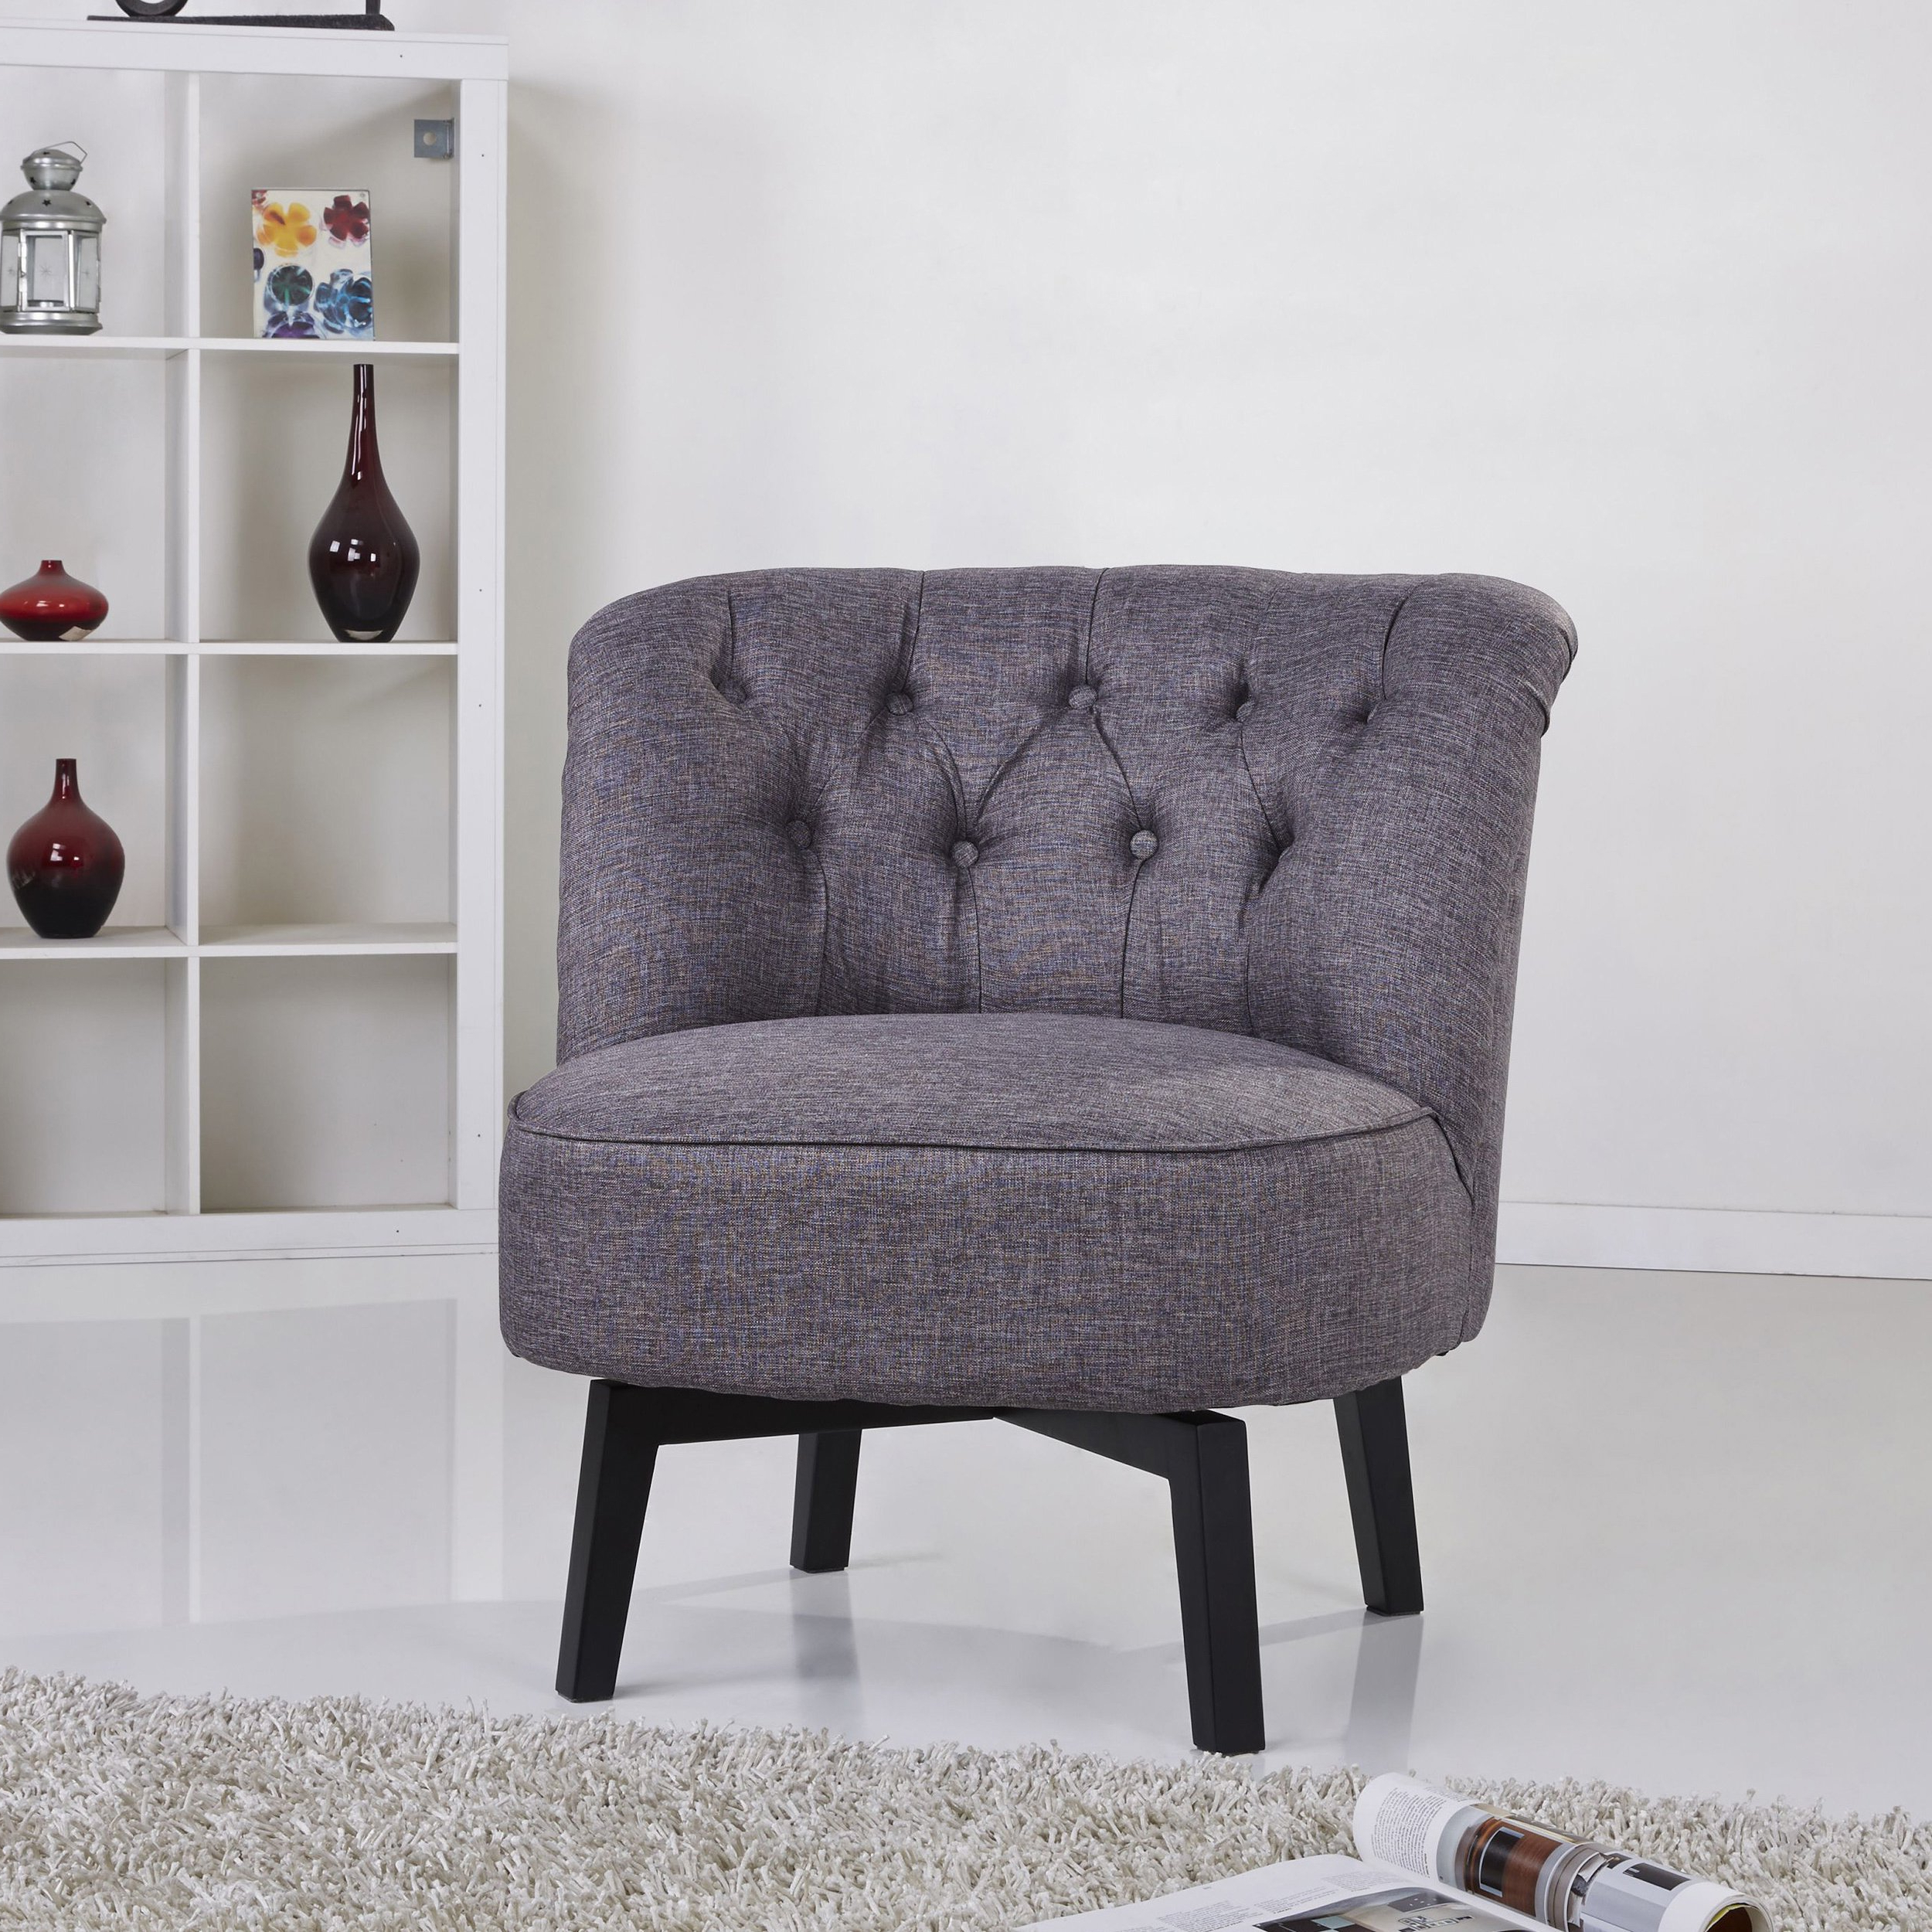 Most Popular Dark Grey Swivel Chairs In Shop Gold Sparrow Raleigh Dark Grey Swivel Chair – Free Shipping (View 14 of 20)